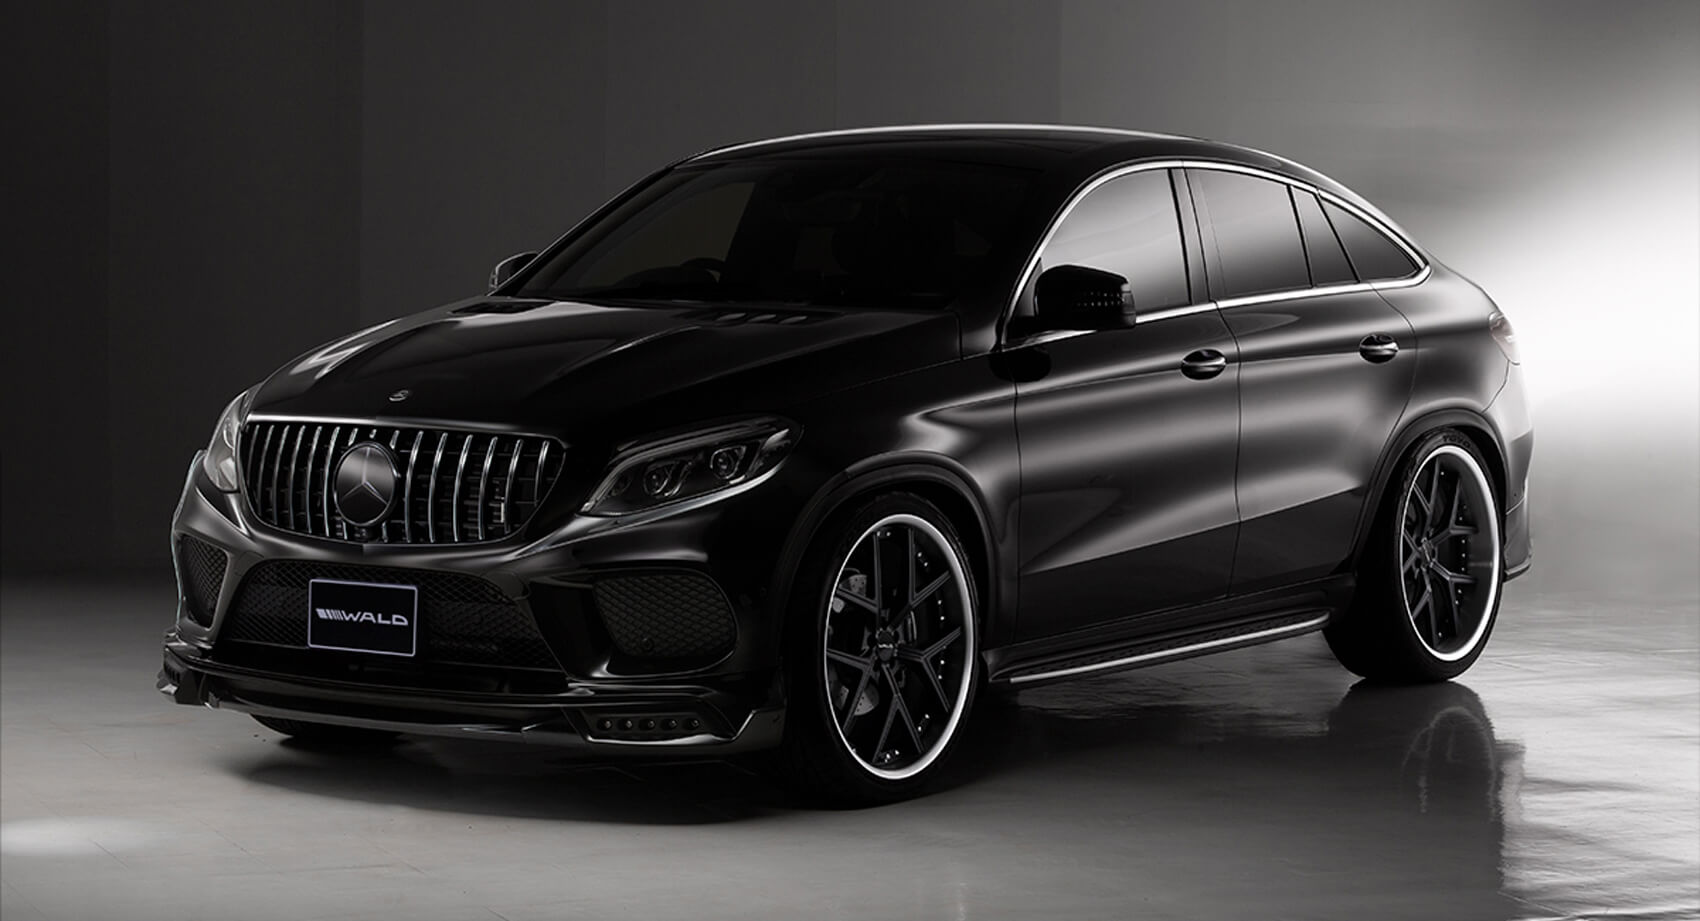 Wald S Latest Blacked Out Mercedes Benz Gle Coupe Is Not A Black Bison Carscoops